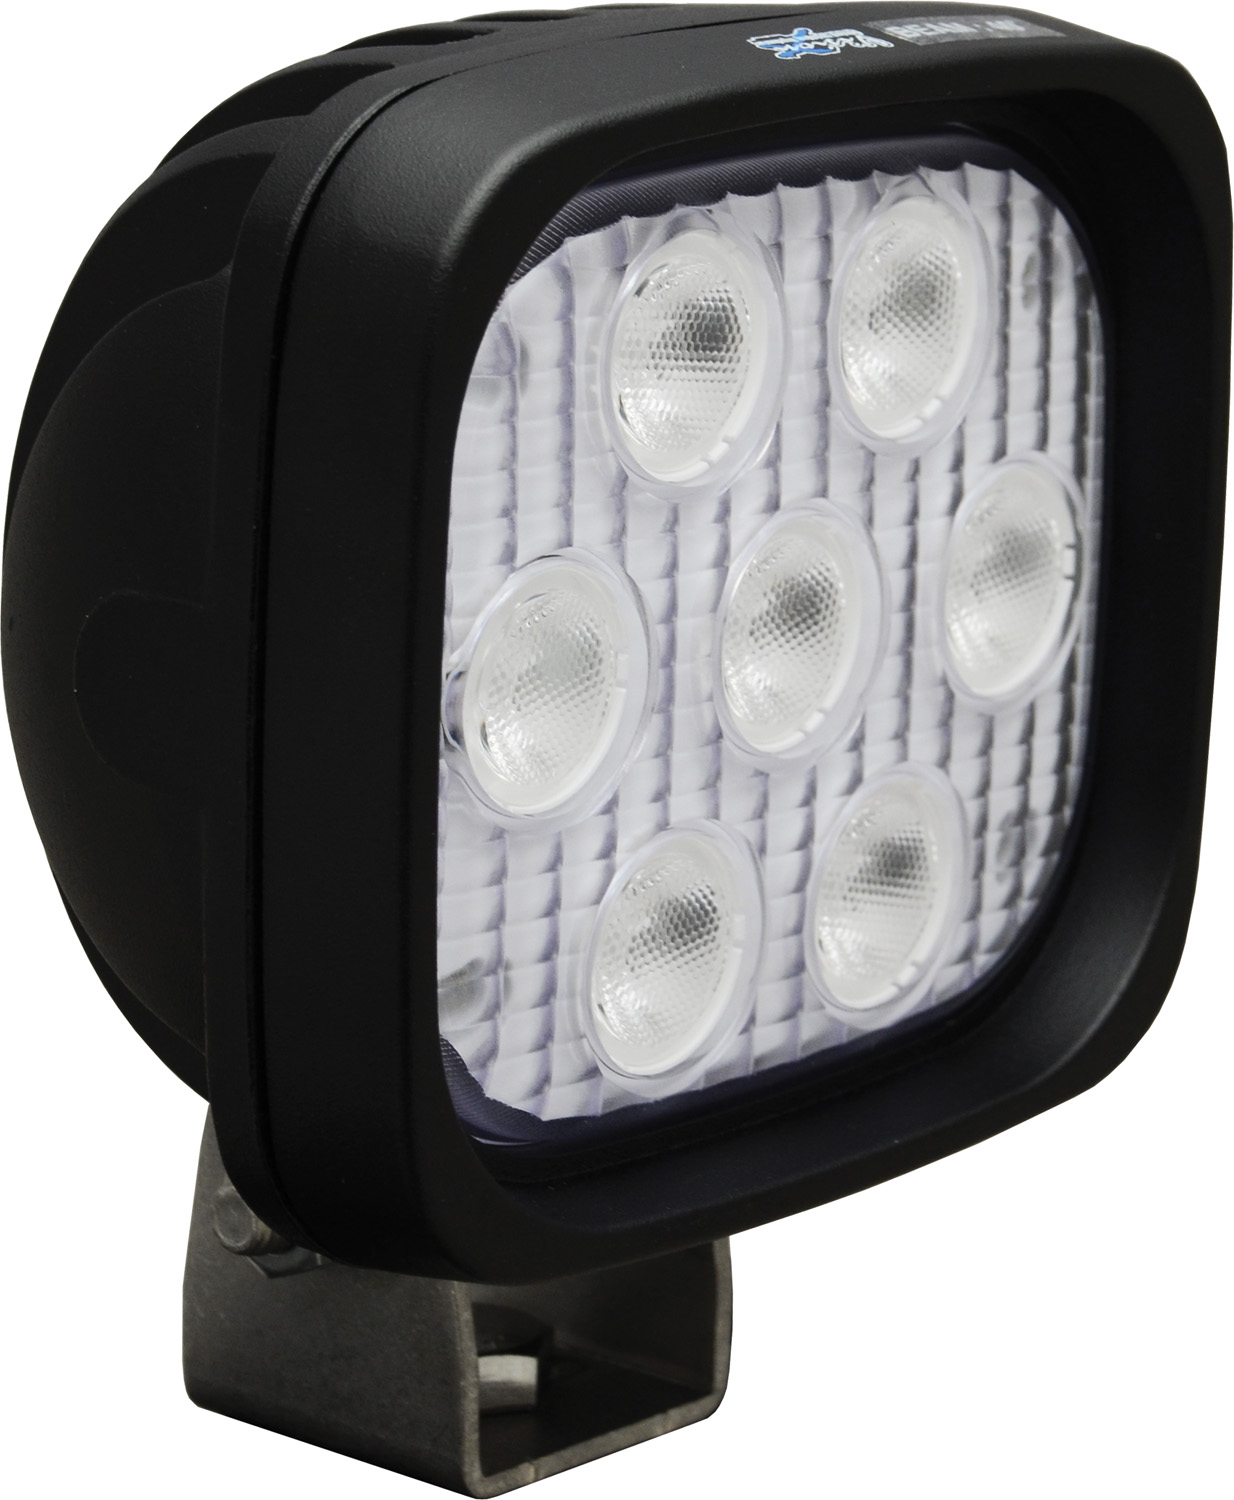 "4"" SQUARE UTILITY MARKET BLACK 7 3W LED'S 40? WIDE"